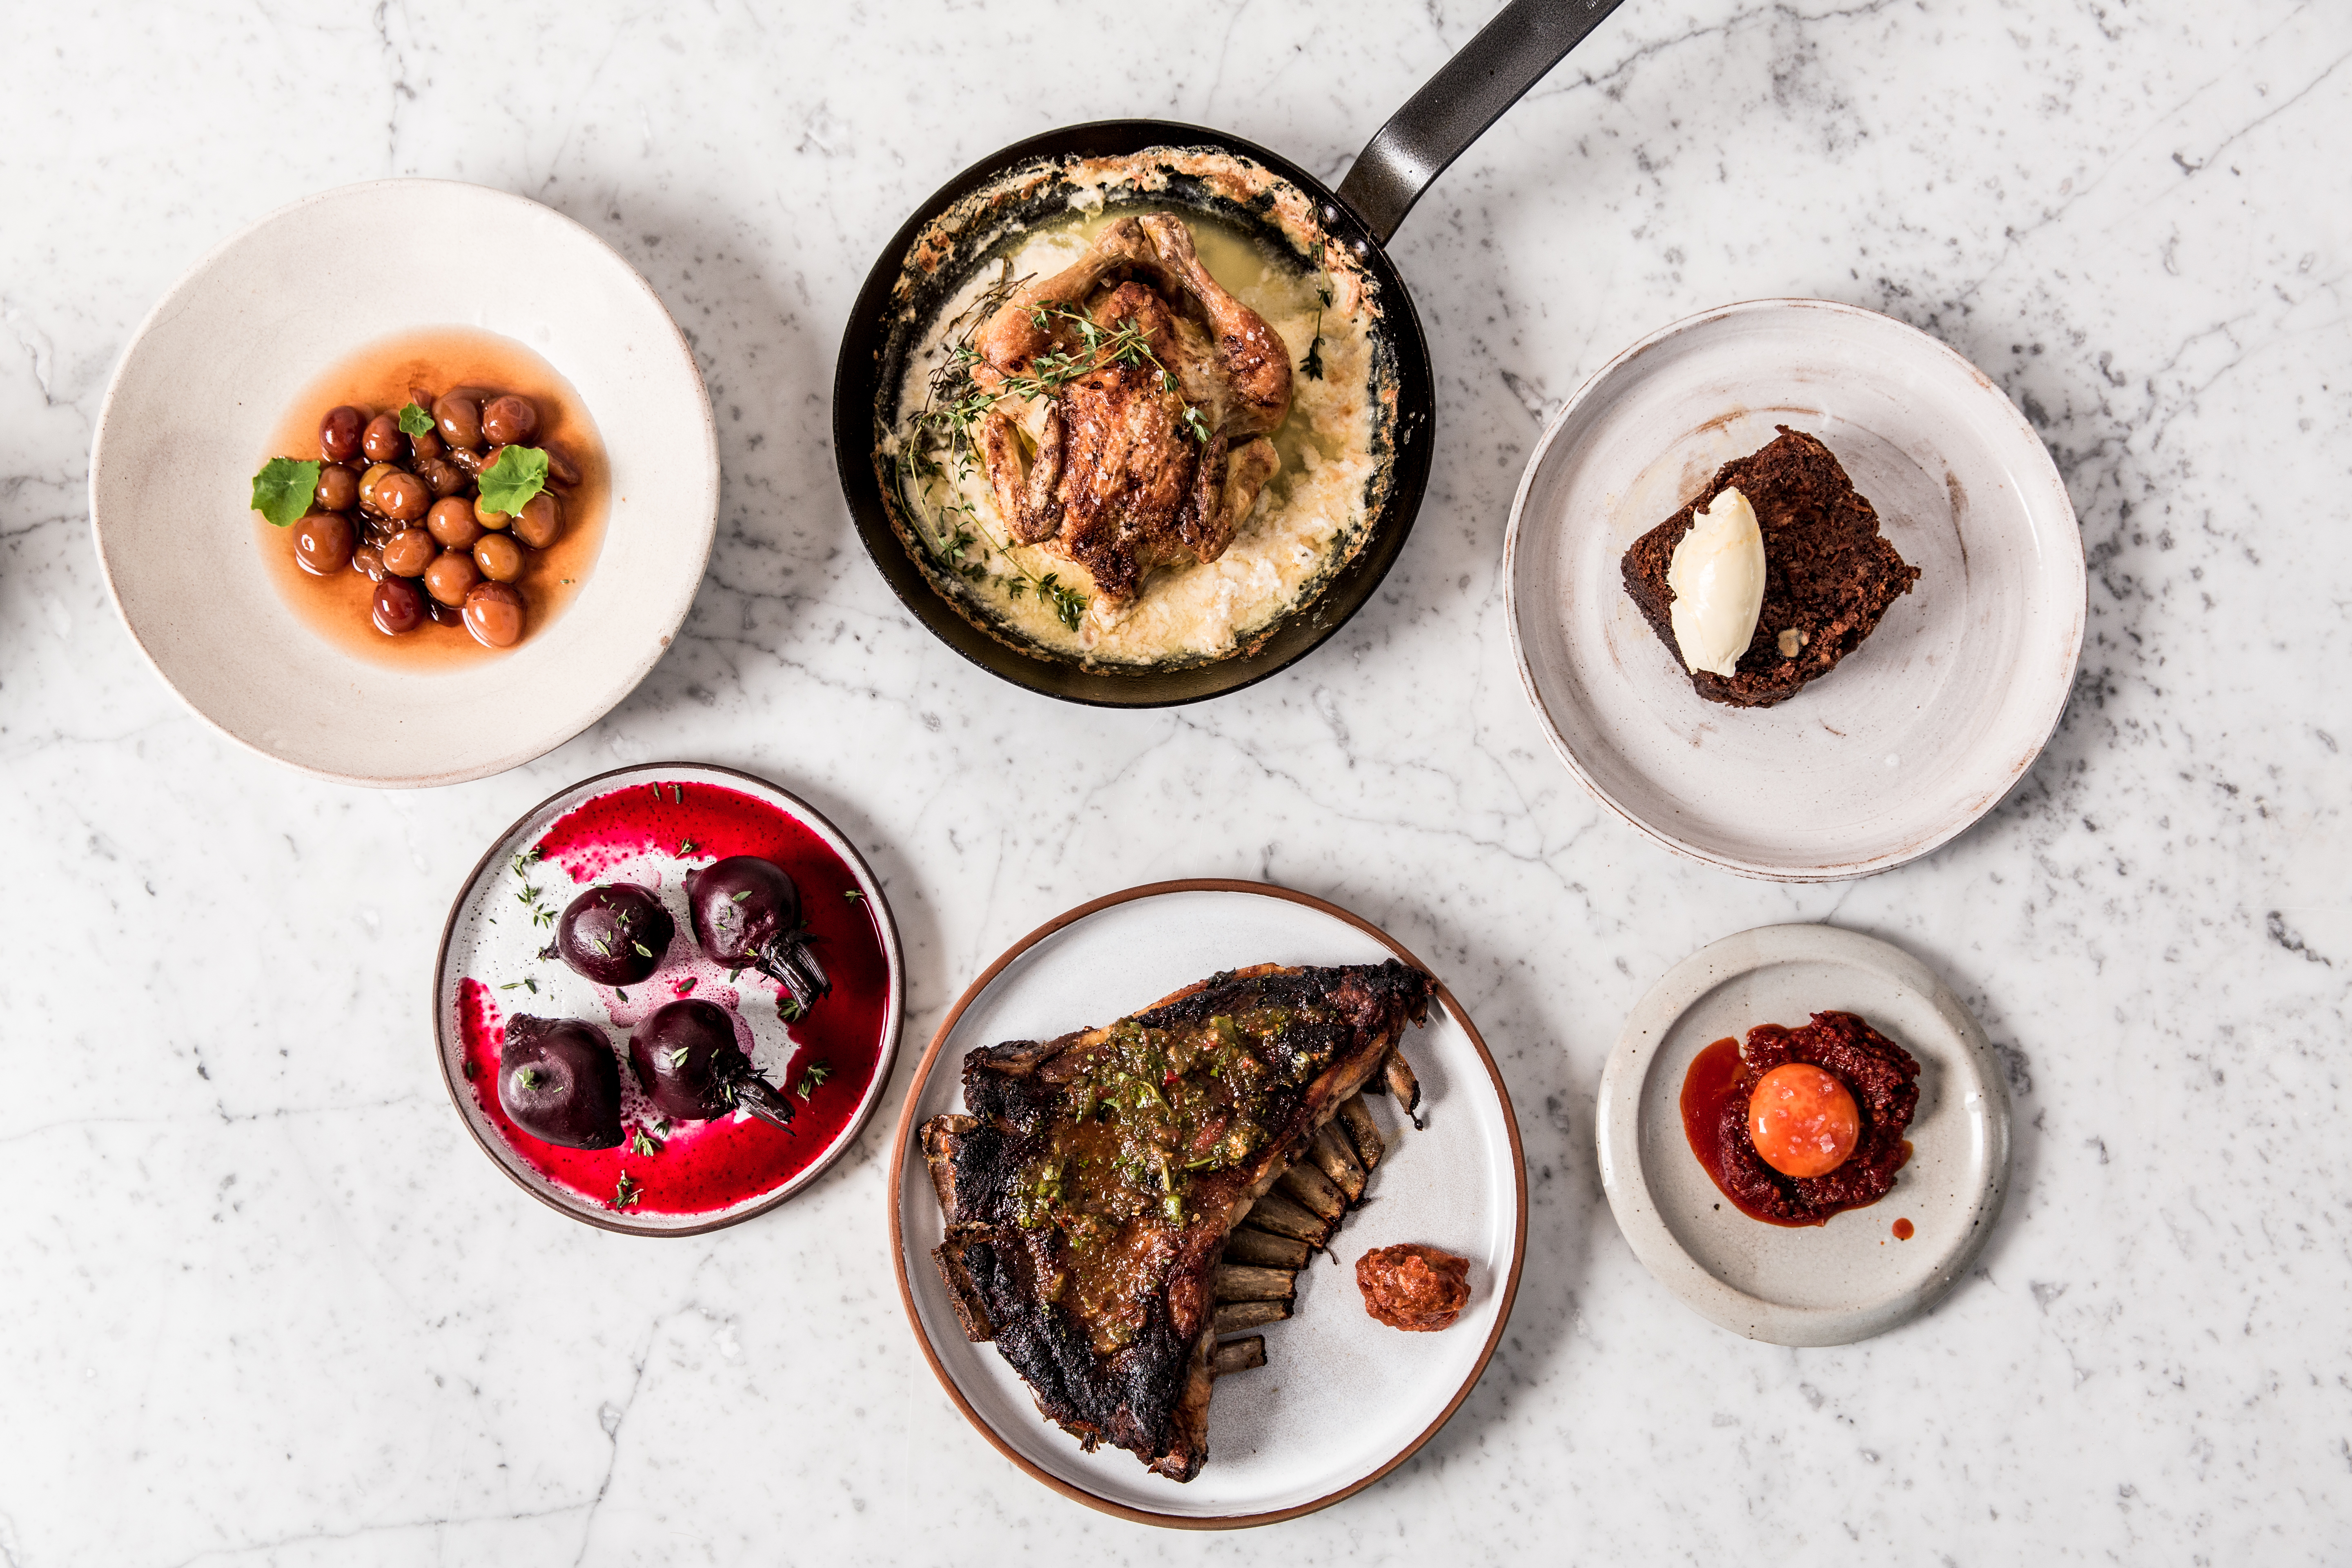 Dandy will open a third version of its cafe, restaurant and wine bar on Maltby Street in 2019